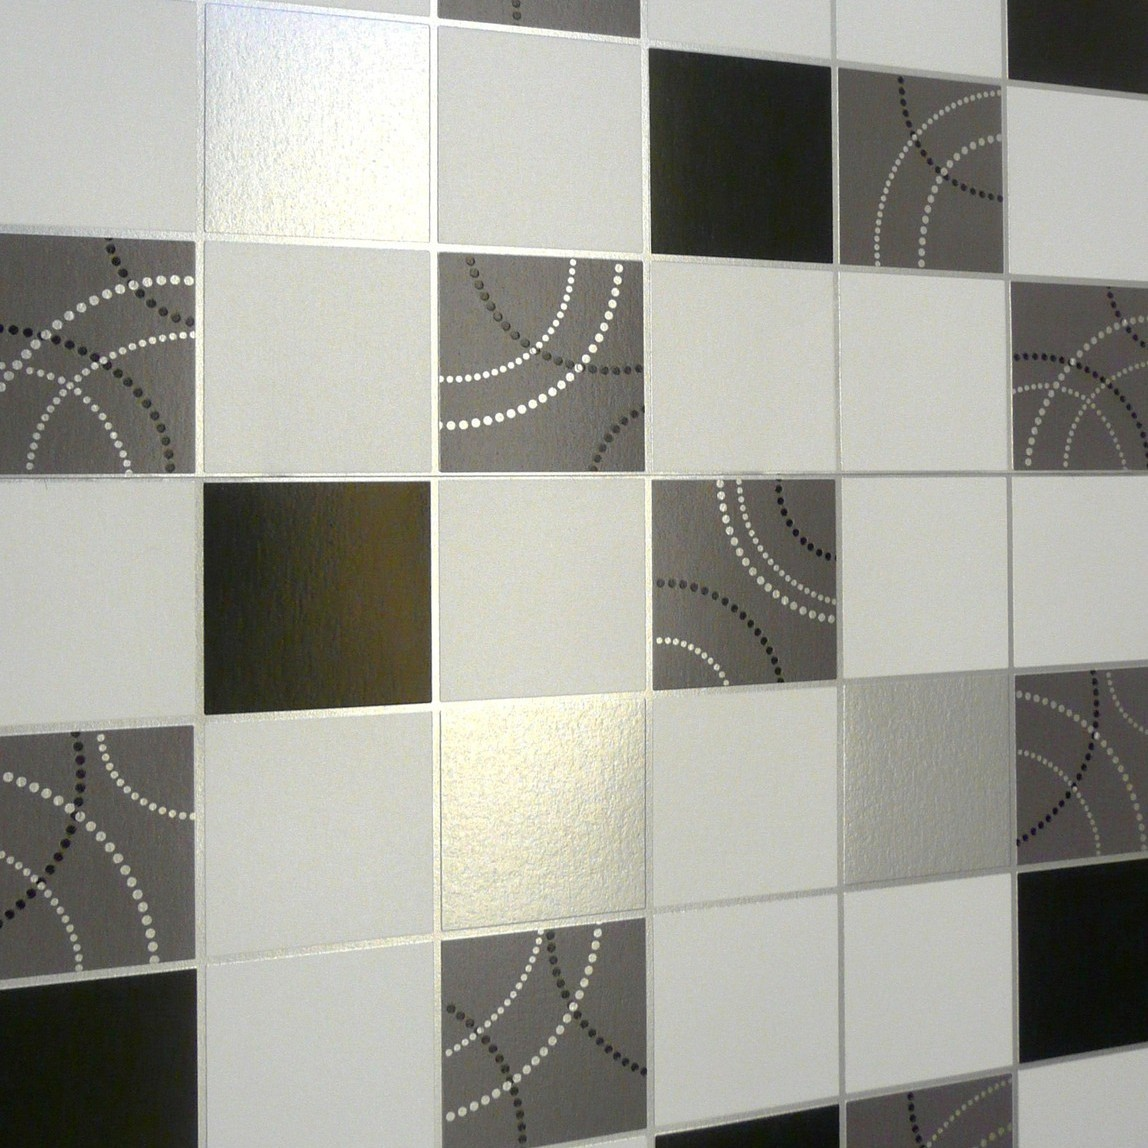 Dotty Silver Black White Tile Tiling Vinyl Bathroom Kitchen ...